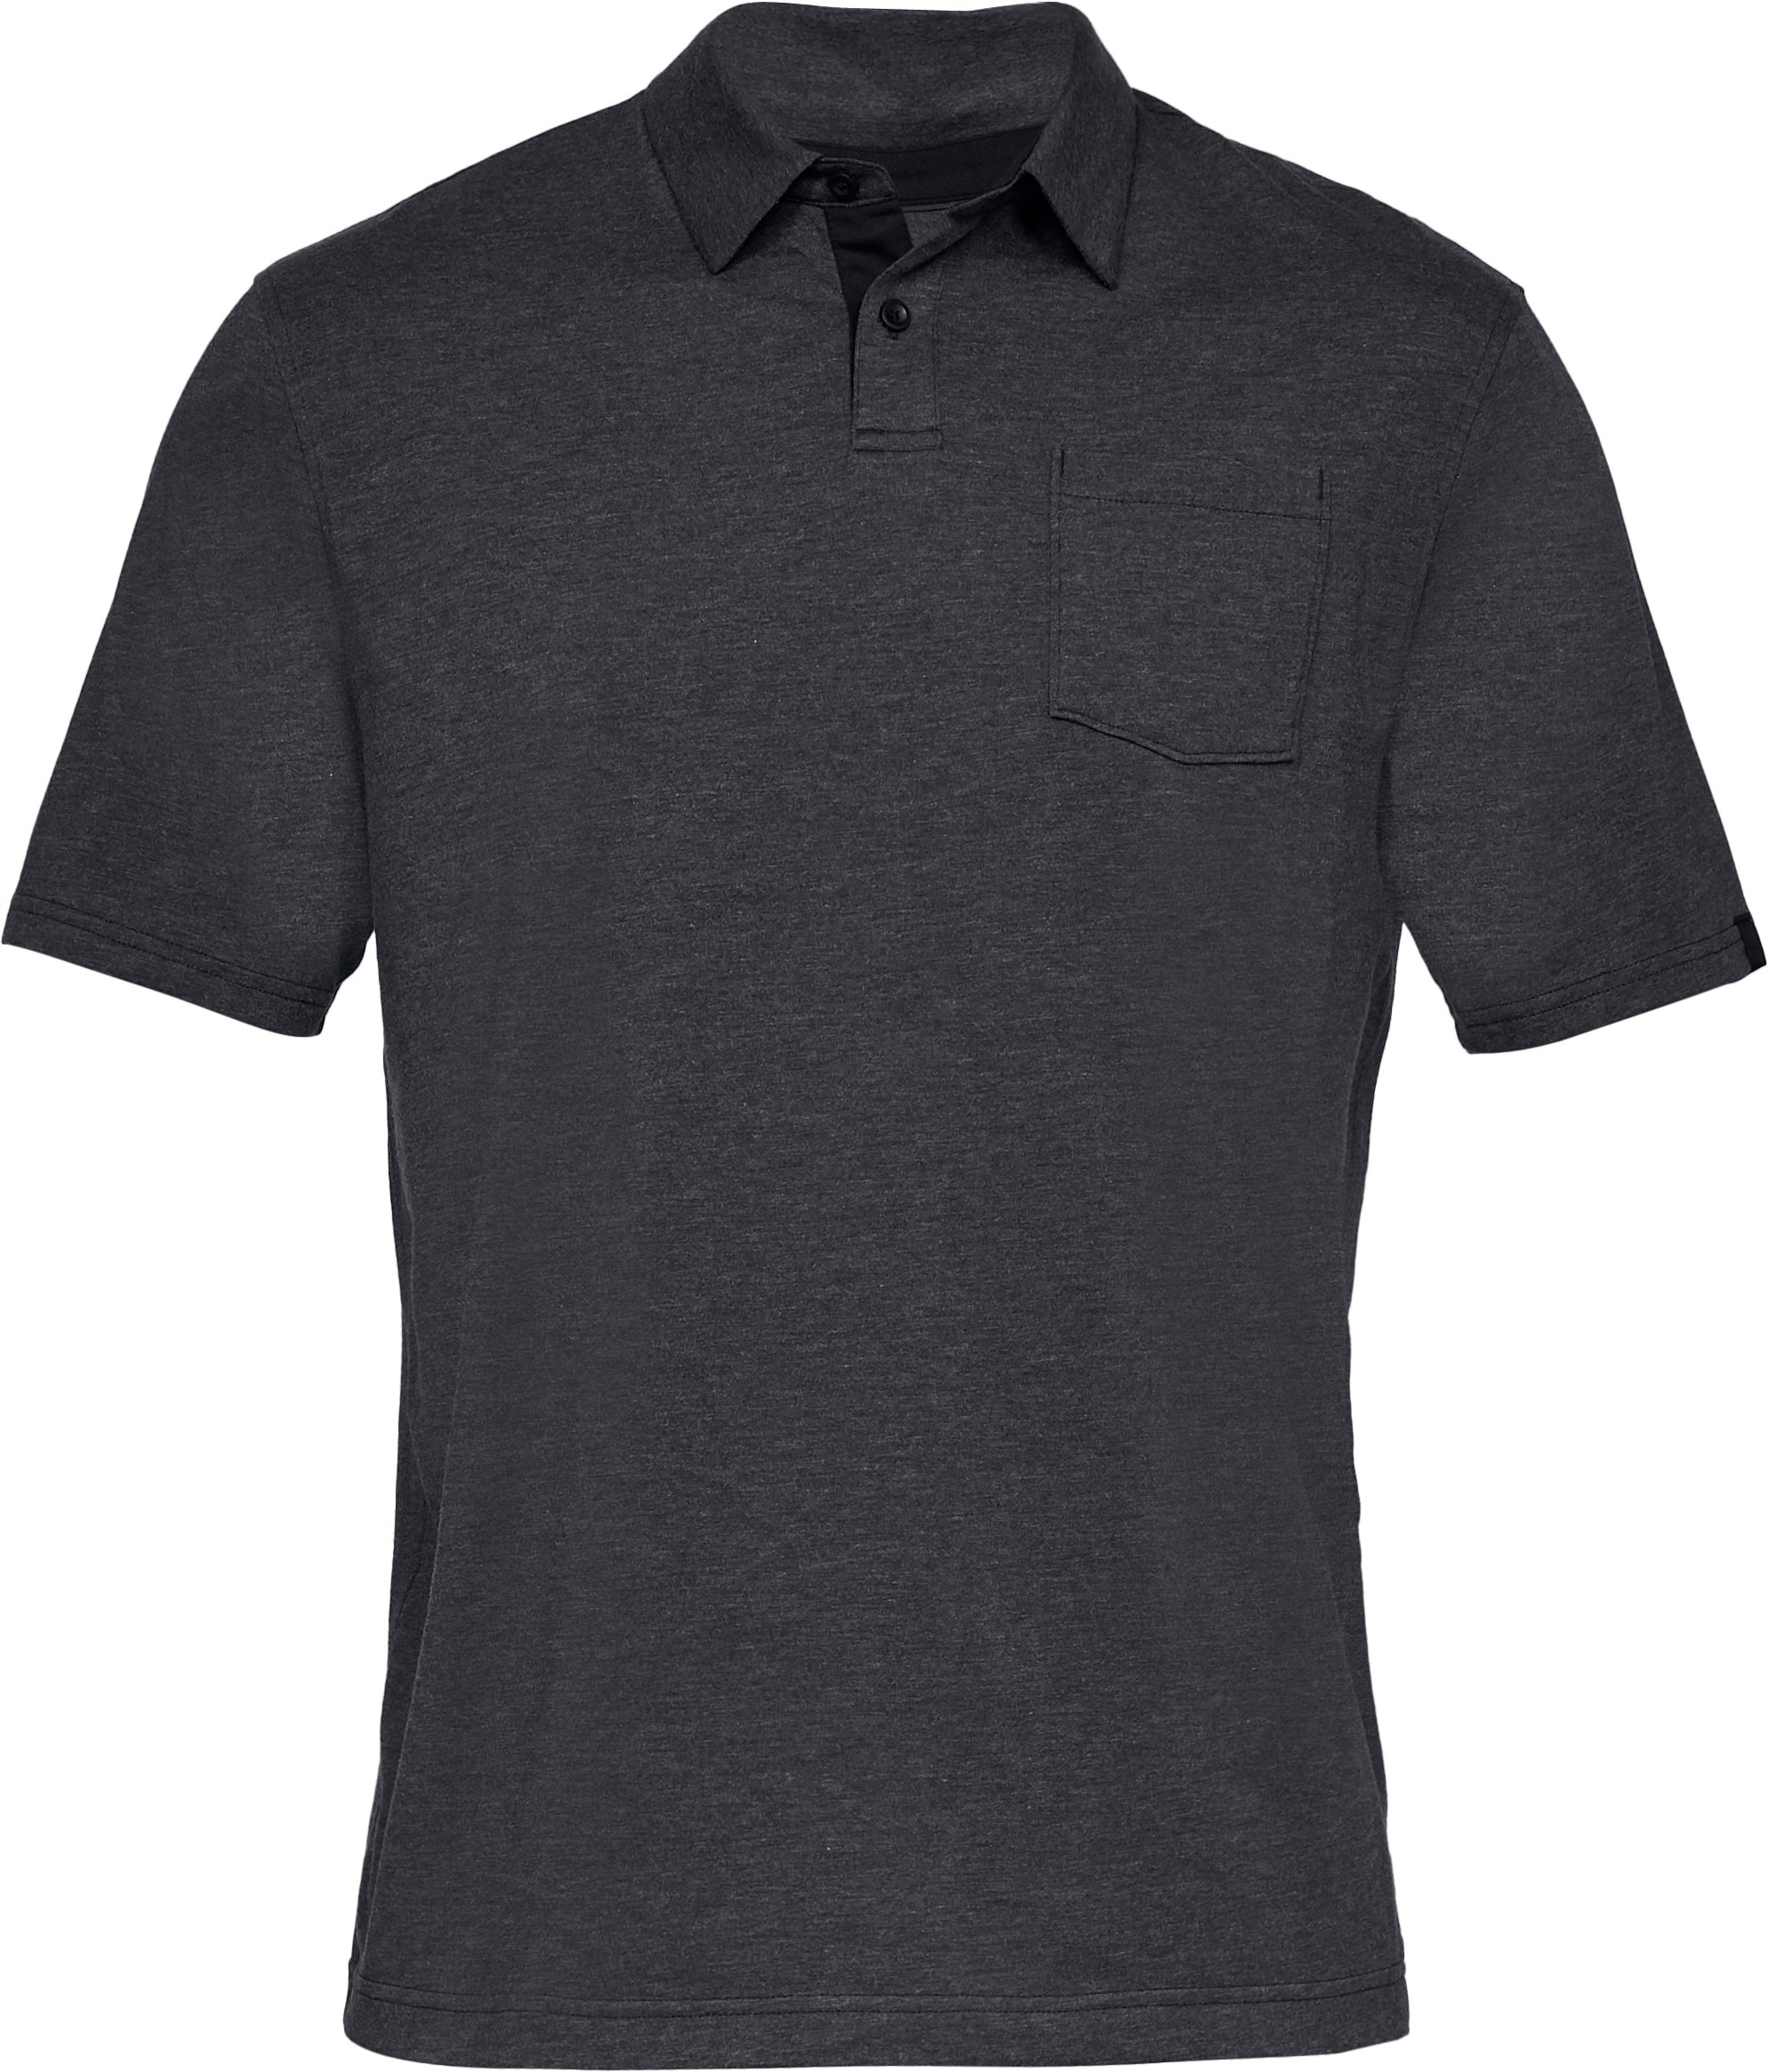 Men's Charged Cotton® Scramble Polo, Black ,